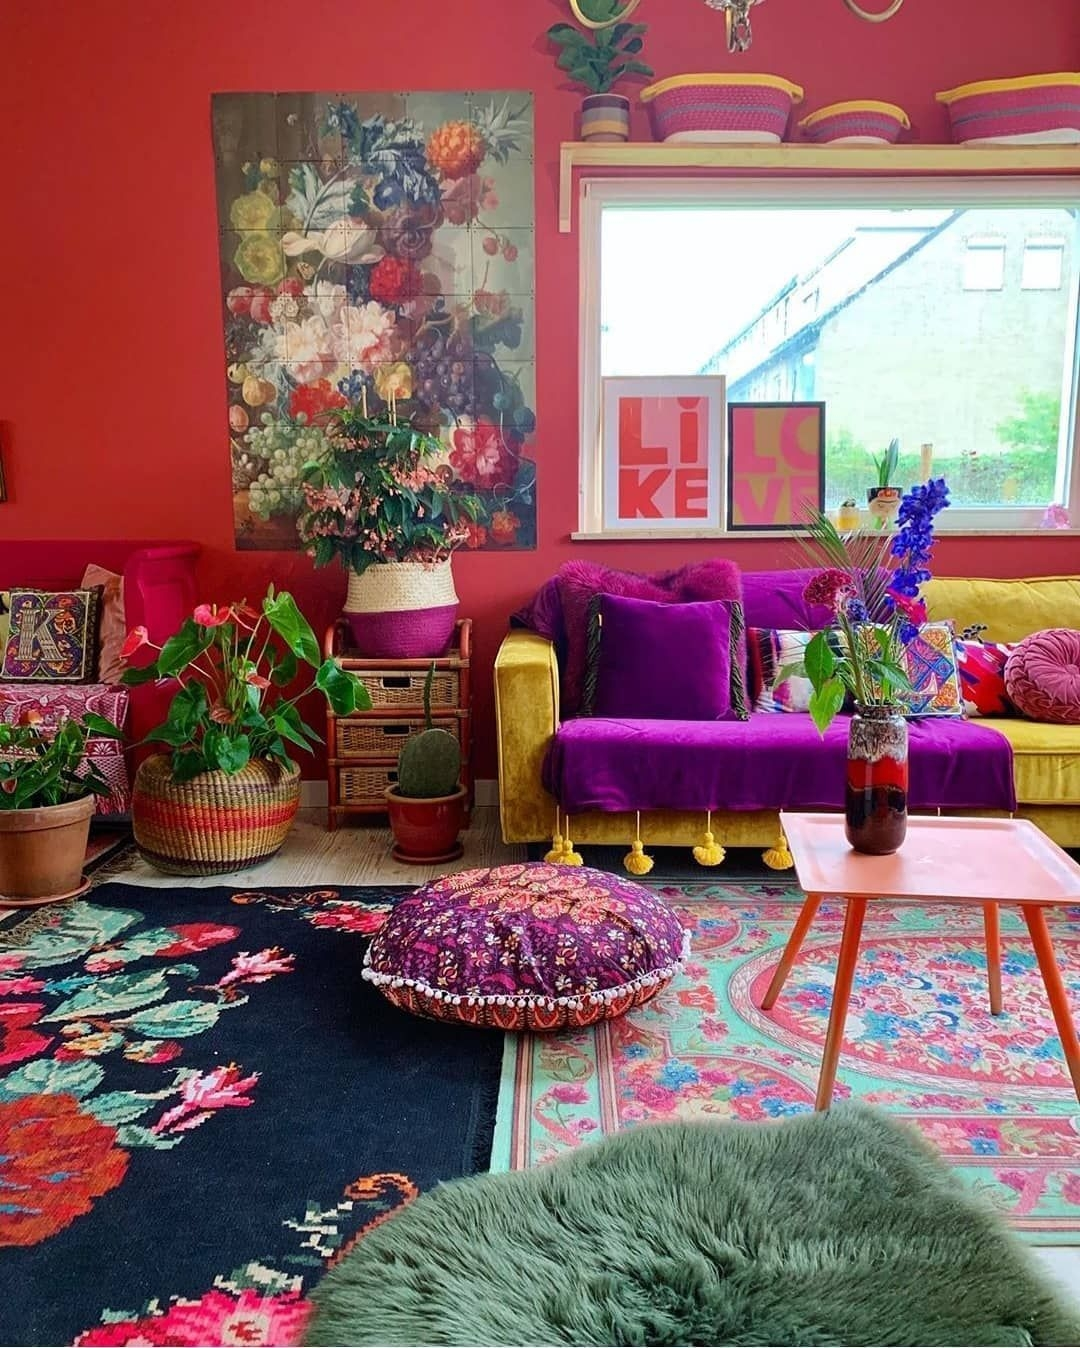 Artistic Home Decor Ideas Living Room Modern Boho area Rug with Plum Accents On Comely Pin by Shabrayle Setliff On Bright Interiors On Home Decor Ideas Living Room Modern Boho area Rug with Plum Accents